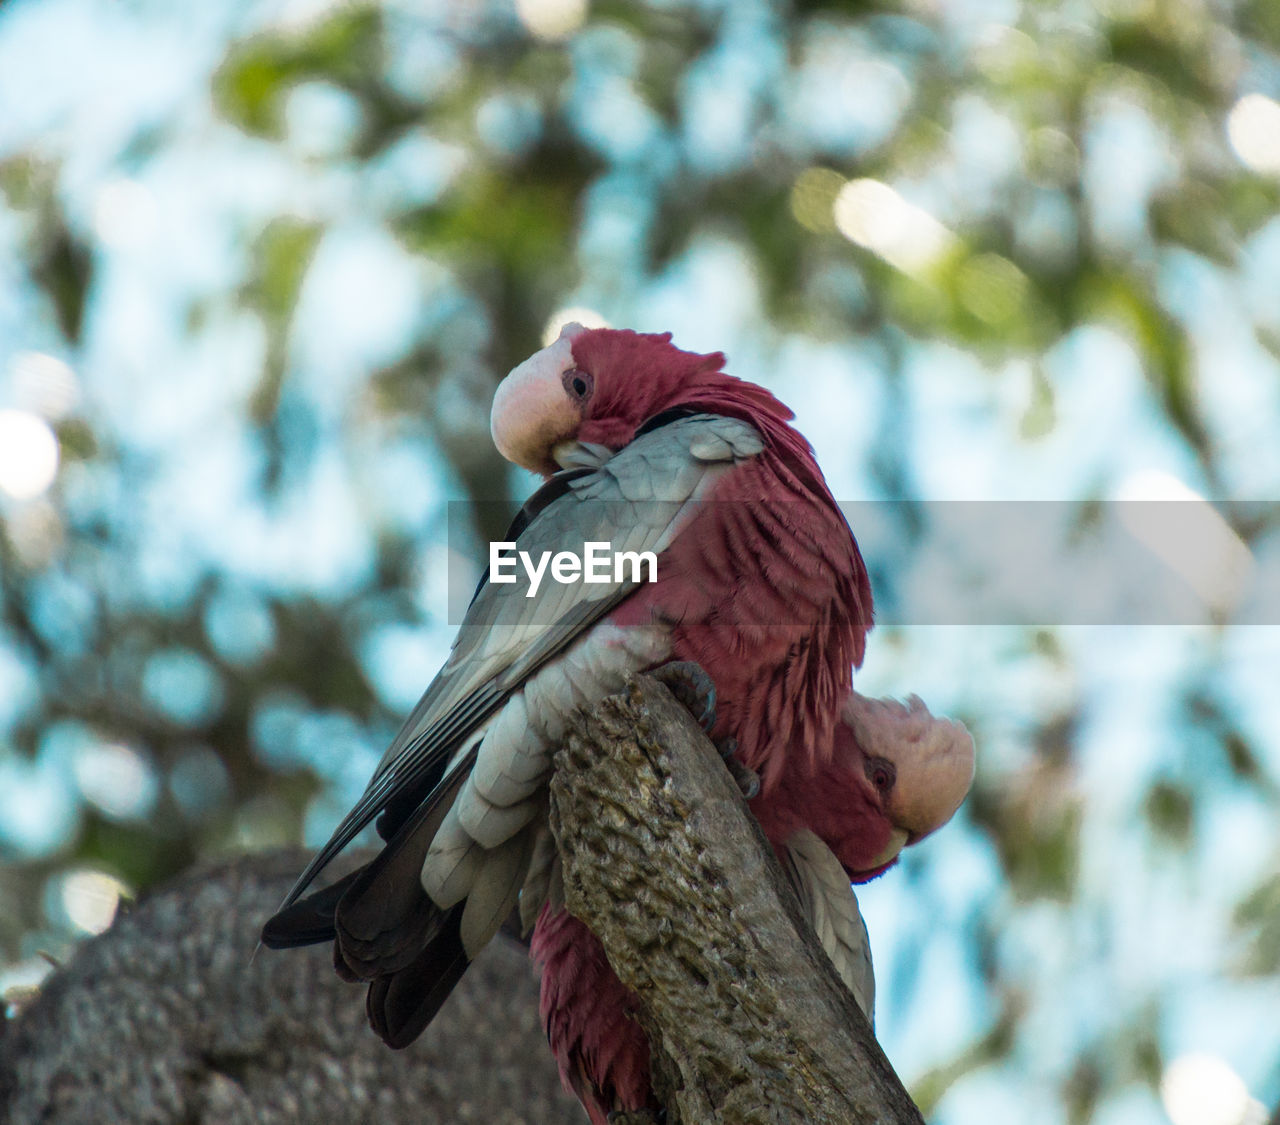 bird, one animal, focus on foreground, animals in the wild, animal themes, parrot, animal wildlife, macaw, scarlet macaw, day, perching, nature, low angle view, outdoors, no people, beauty in nature, tree, close-up